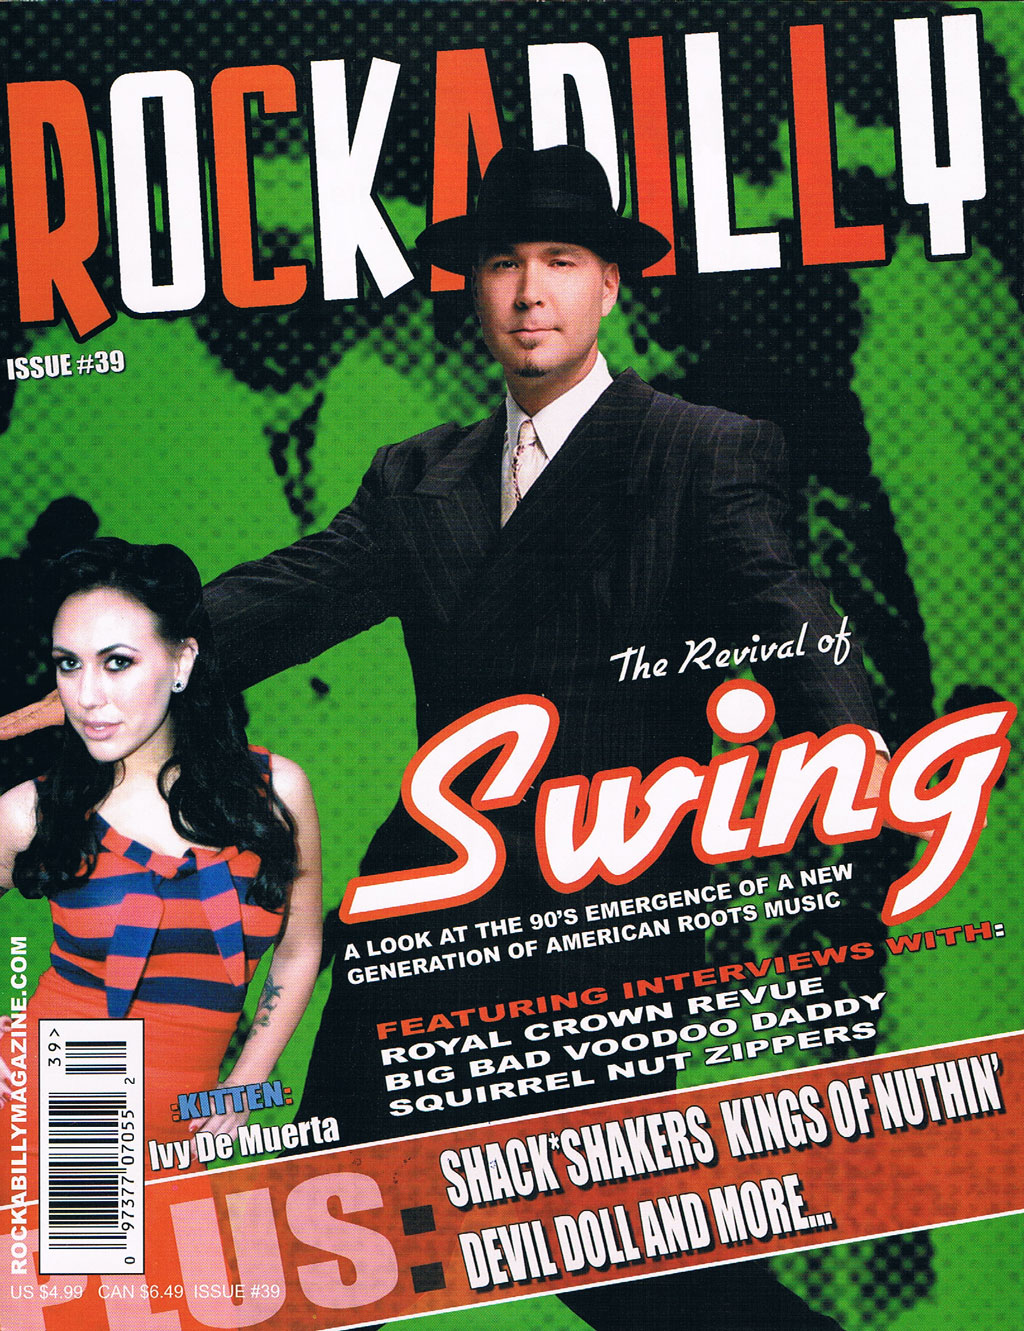 Rockabilly Magazine #39